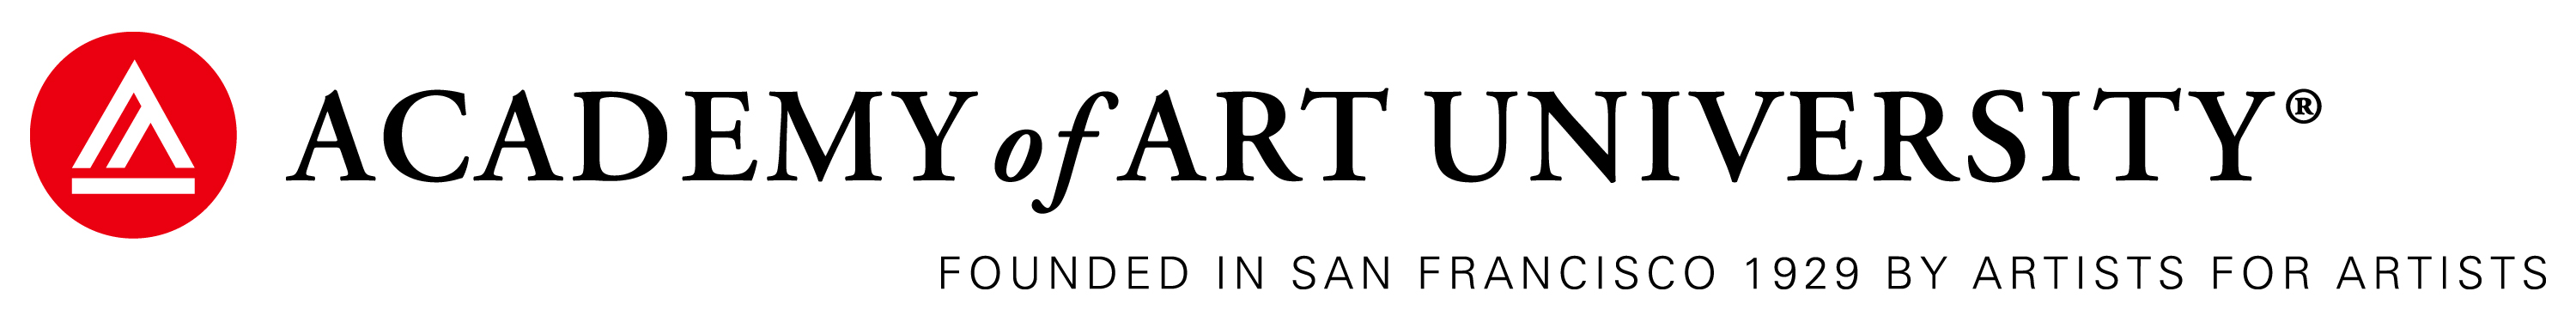 Academy of Art University, San Francisco, CA logo